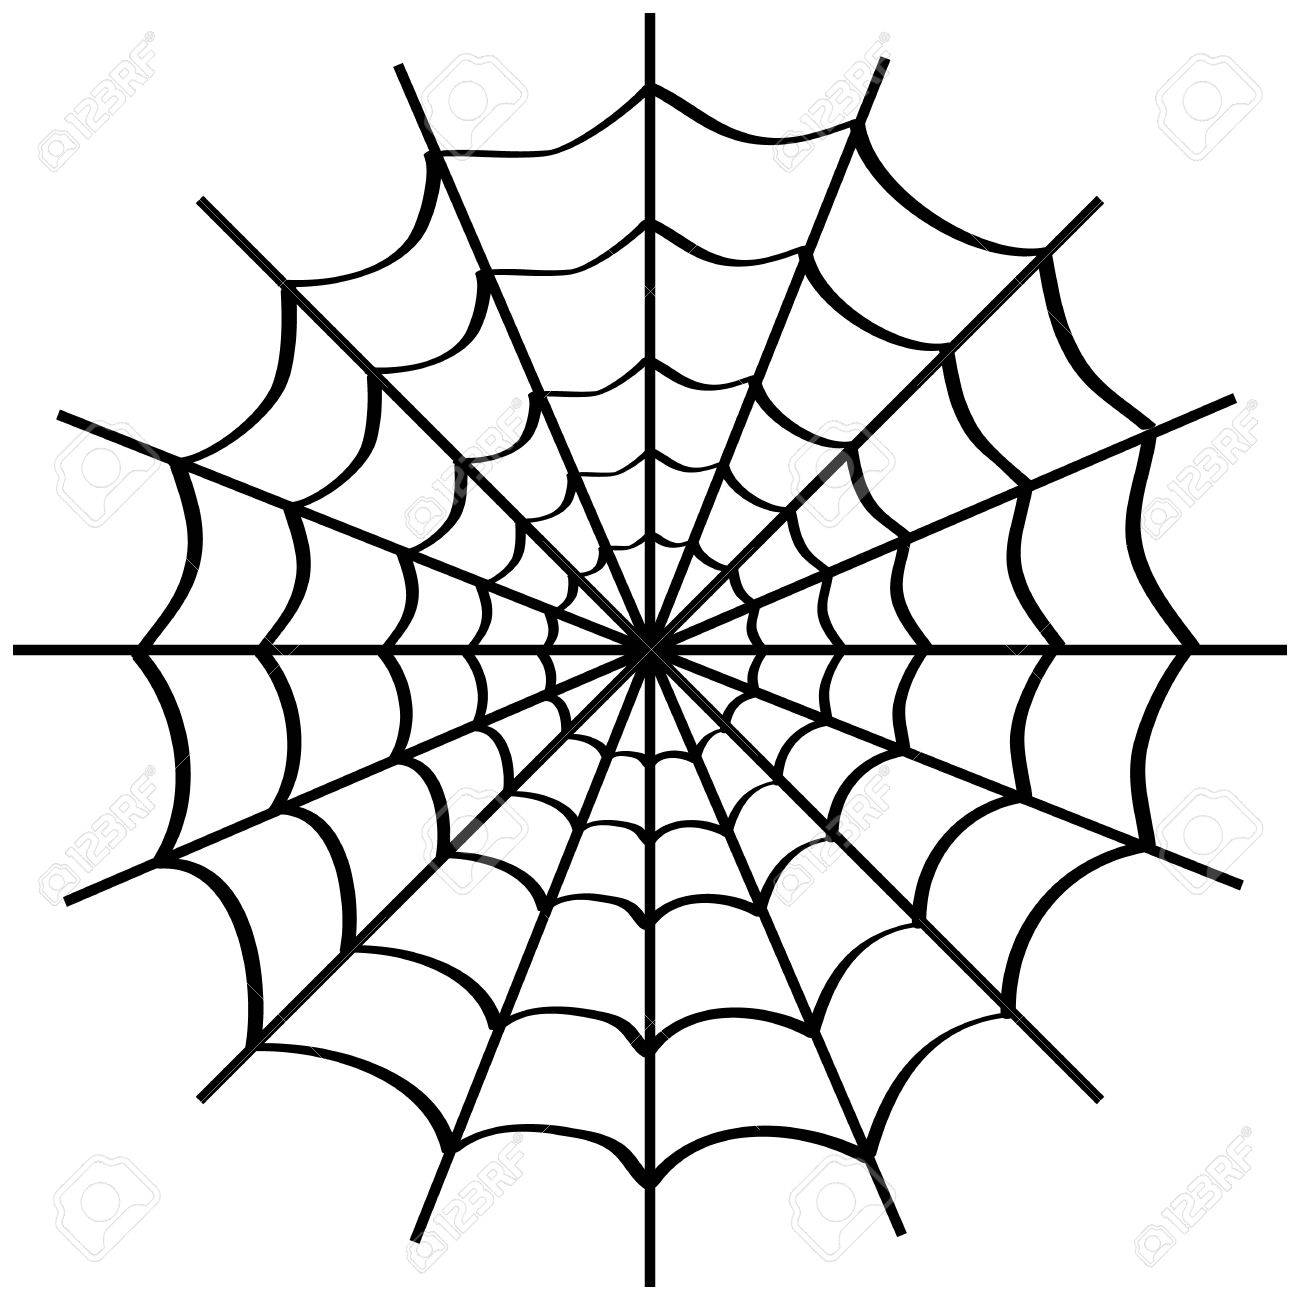 spider web on white background royalty free cliparts vectors and rh 123rf com vector spider web corner spider web vector png